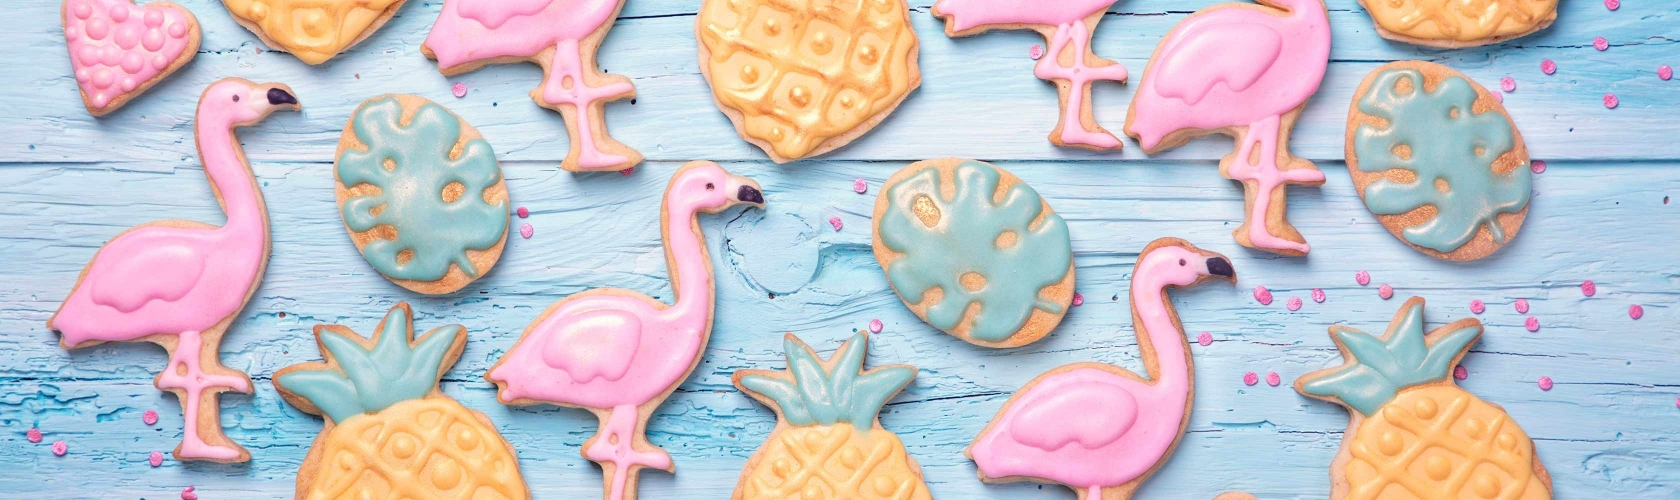 Flamants roses et biscuits ananas